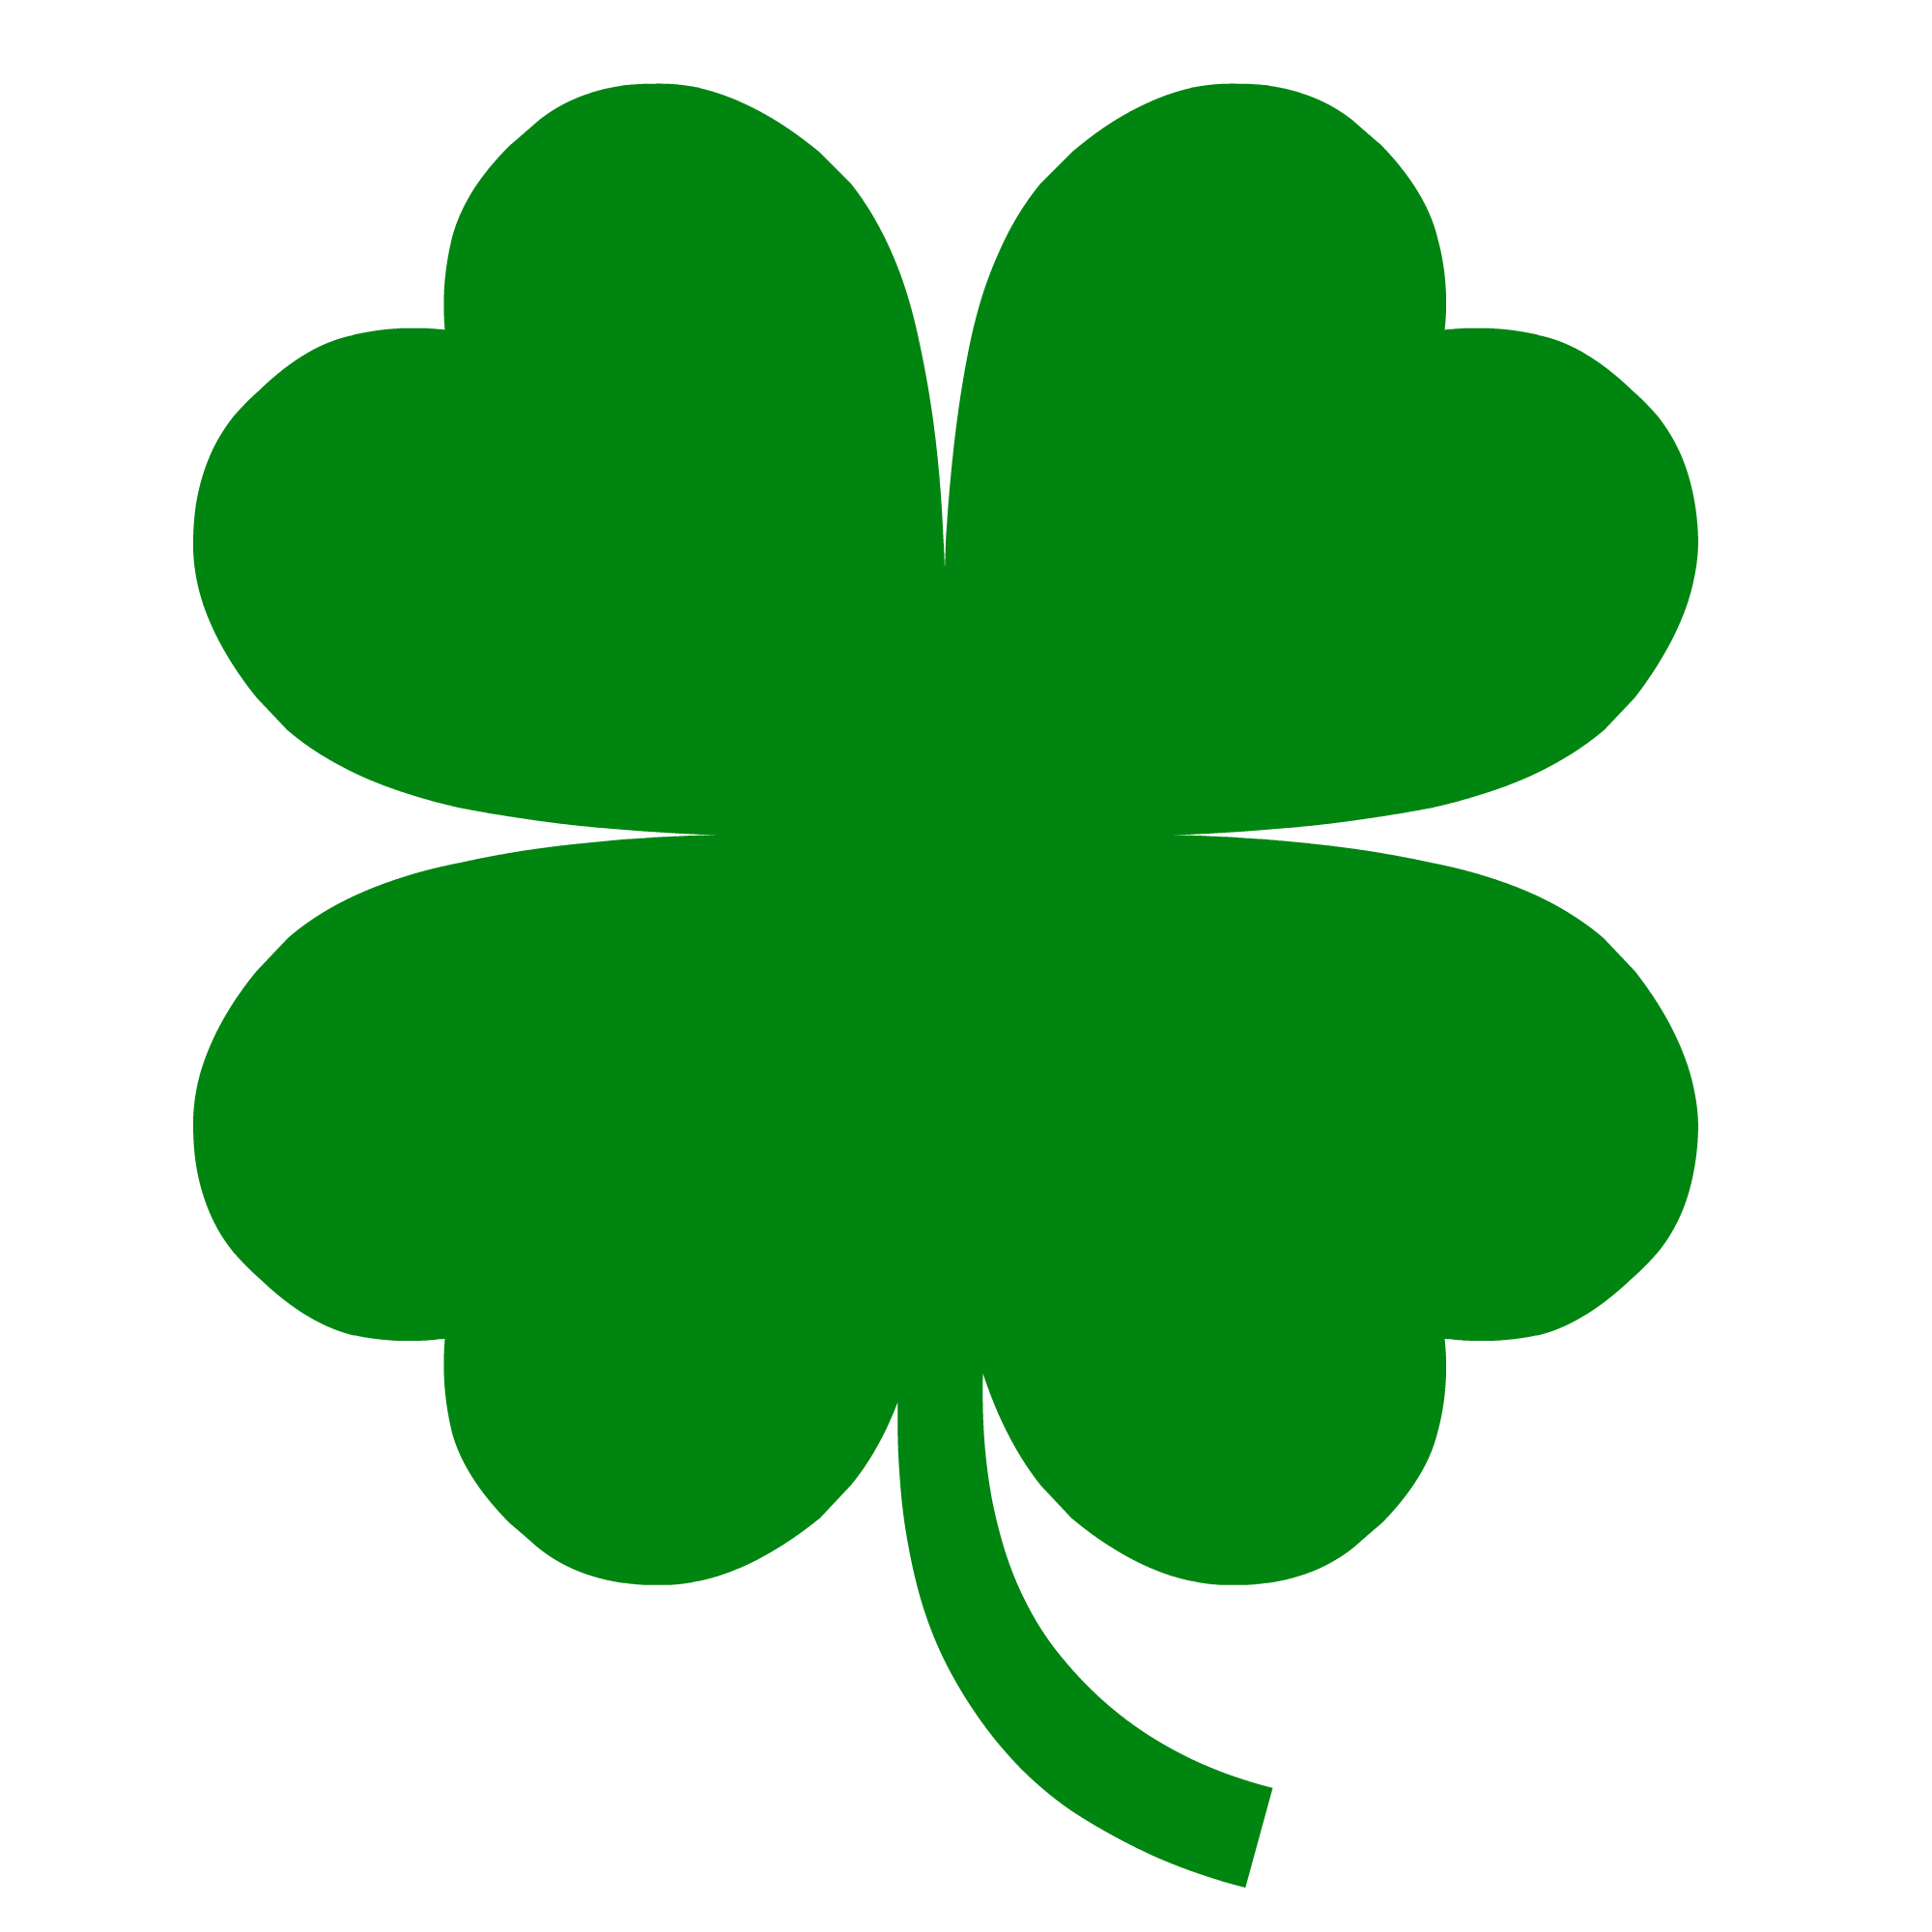 4 leaf clover clipart at getdrawings com free for personal use 4 rh getdrawings com